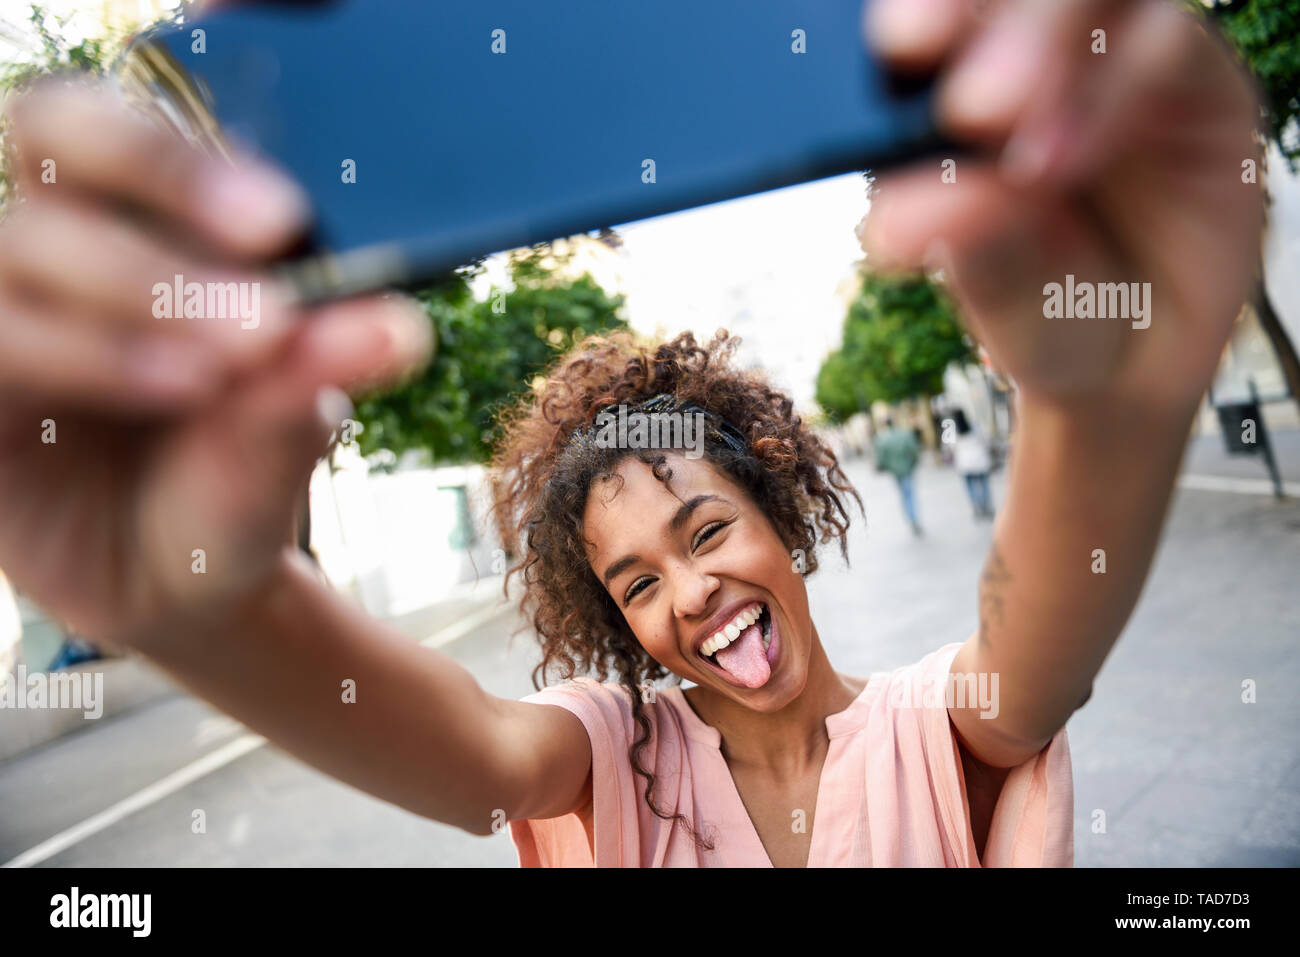 Carefree young woman taking a selfie in the city - Stock Image